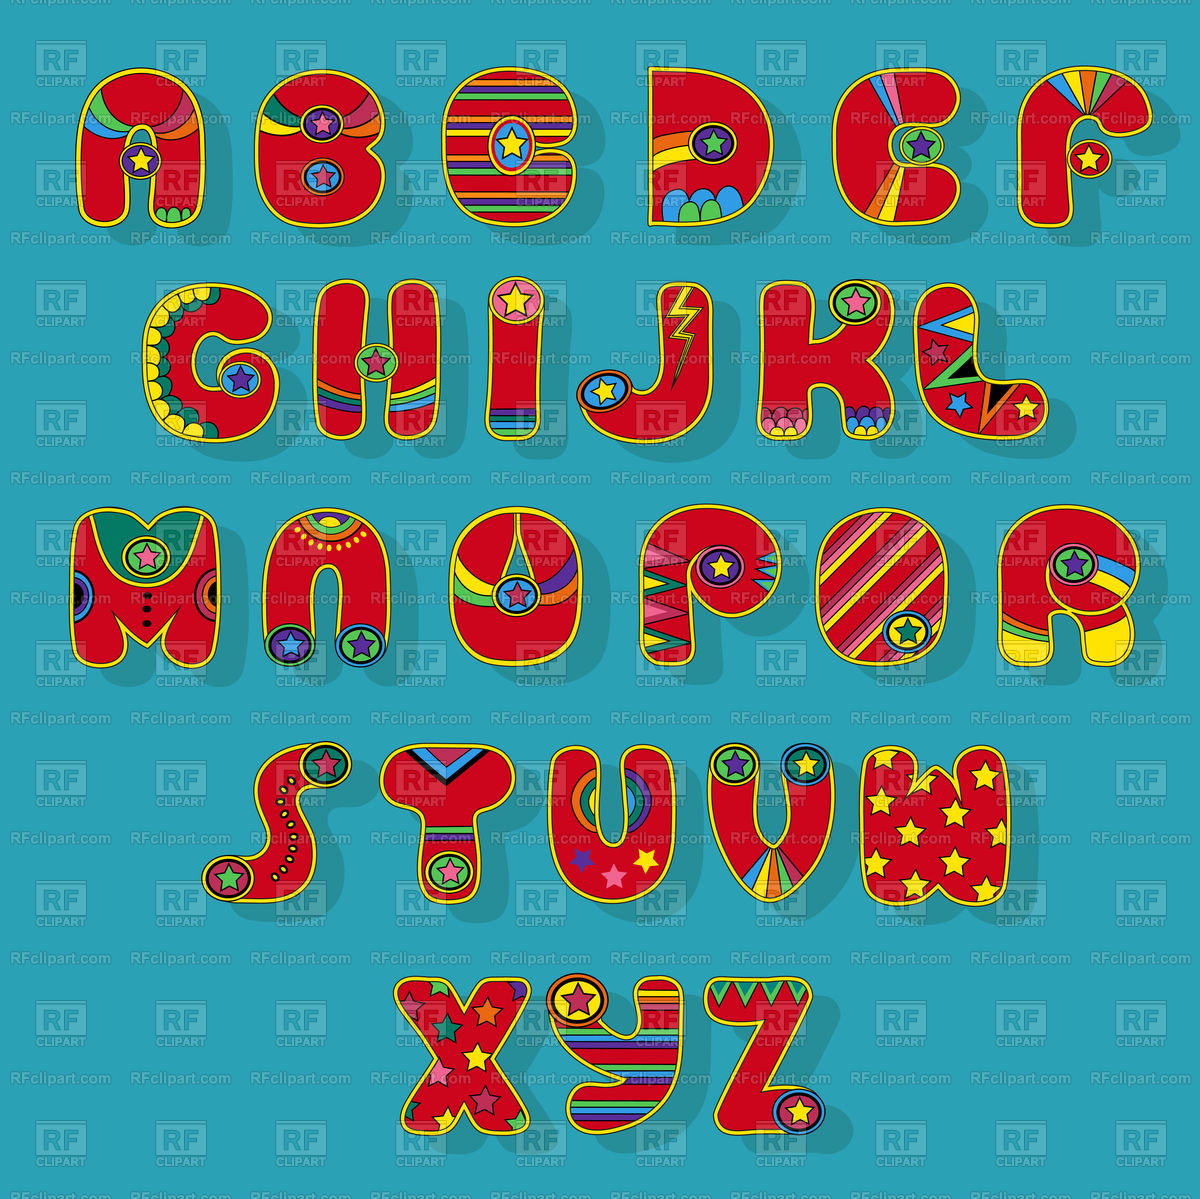 Superhero font alphabet on blue background Free Vector Image.